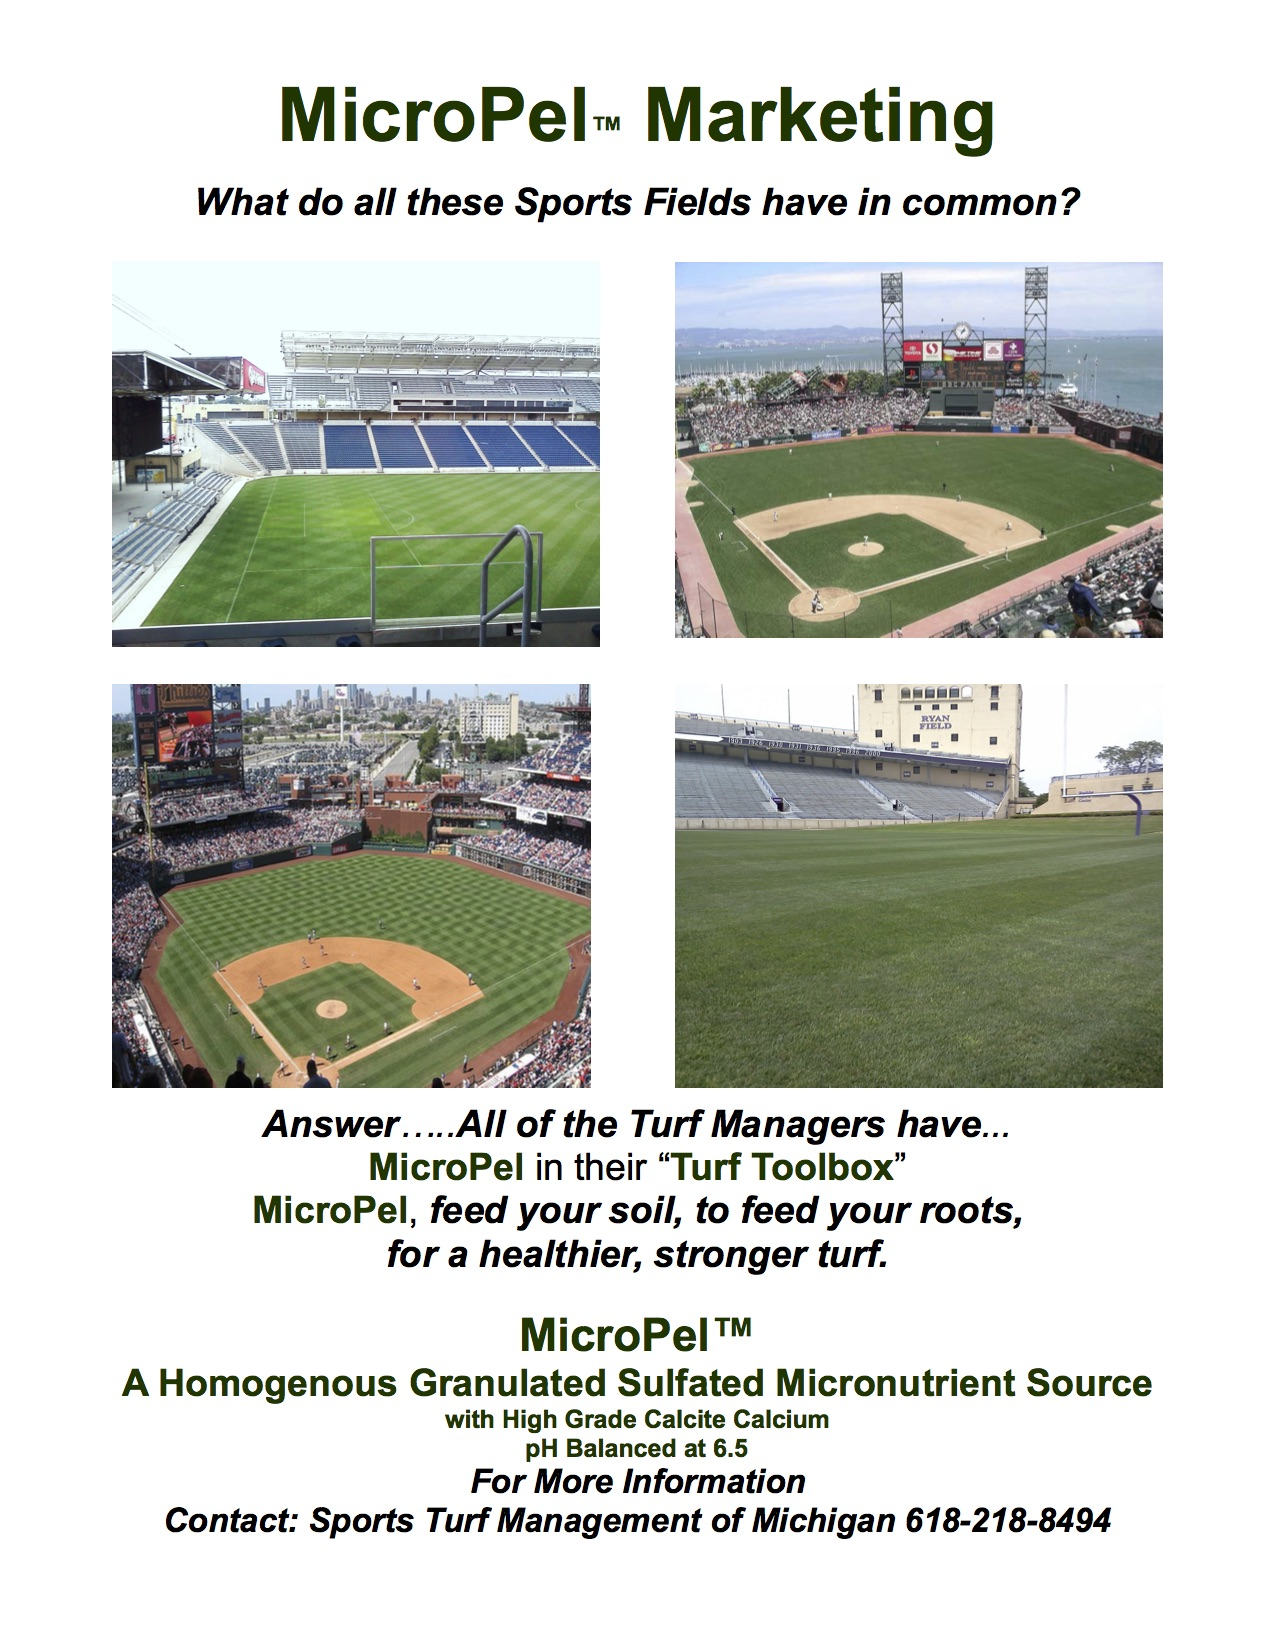 MicroPel Stadiums-CALL Sports Turf Management